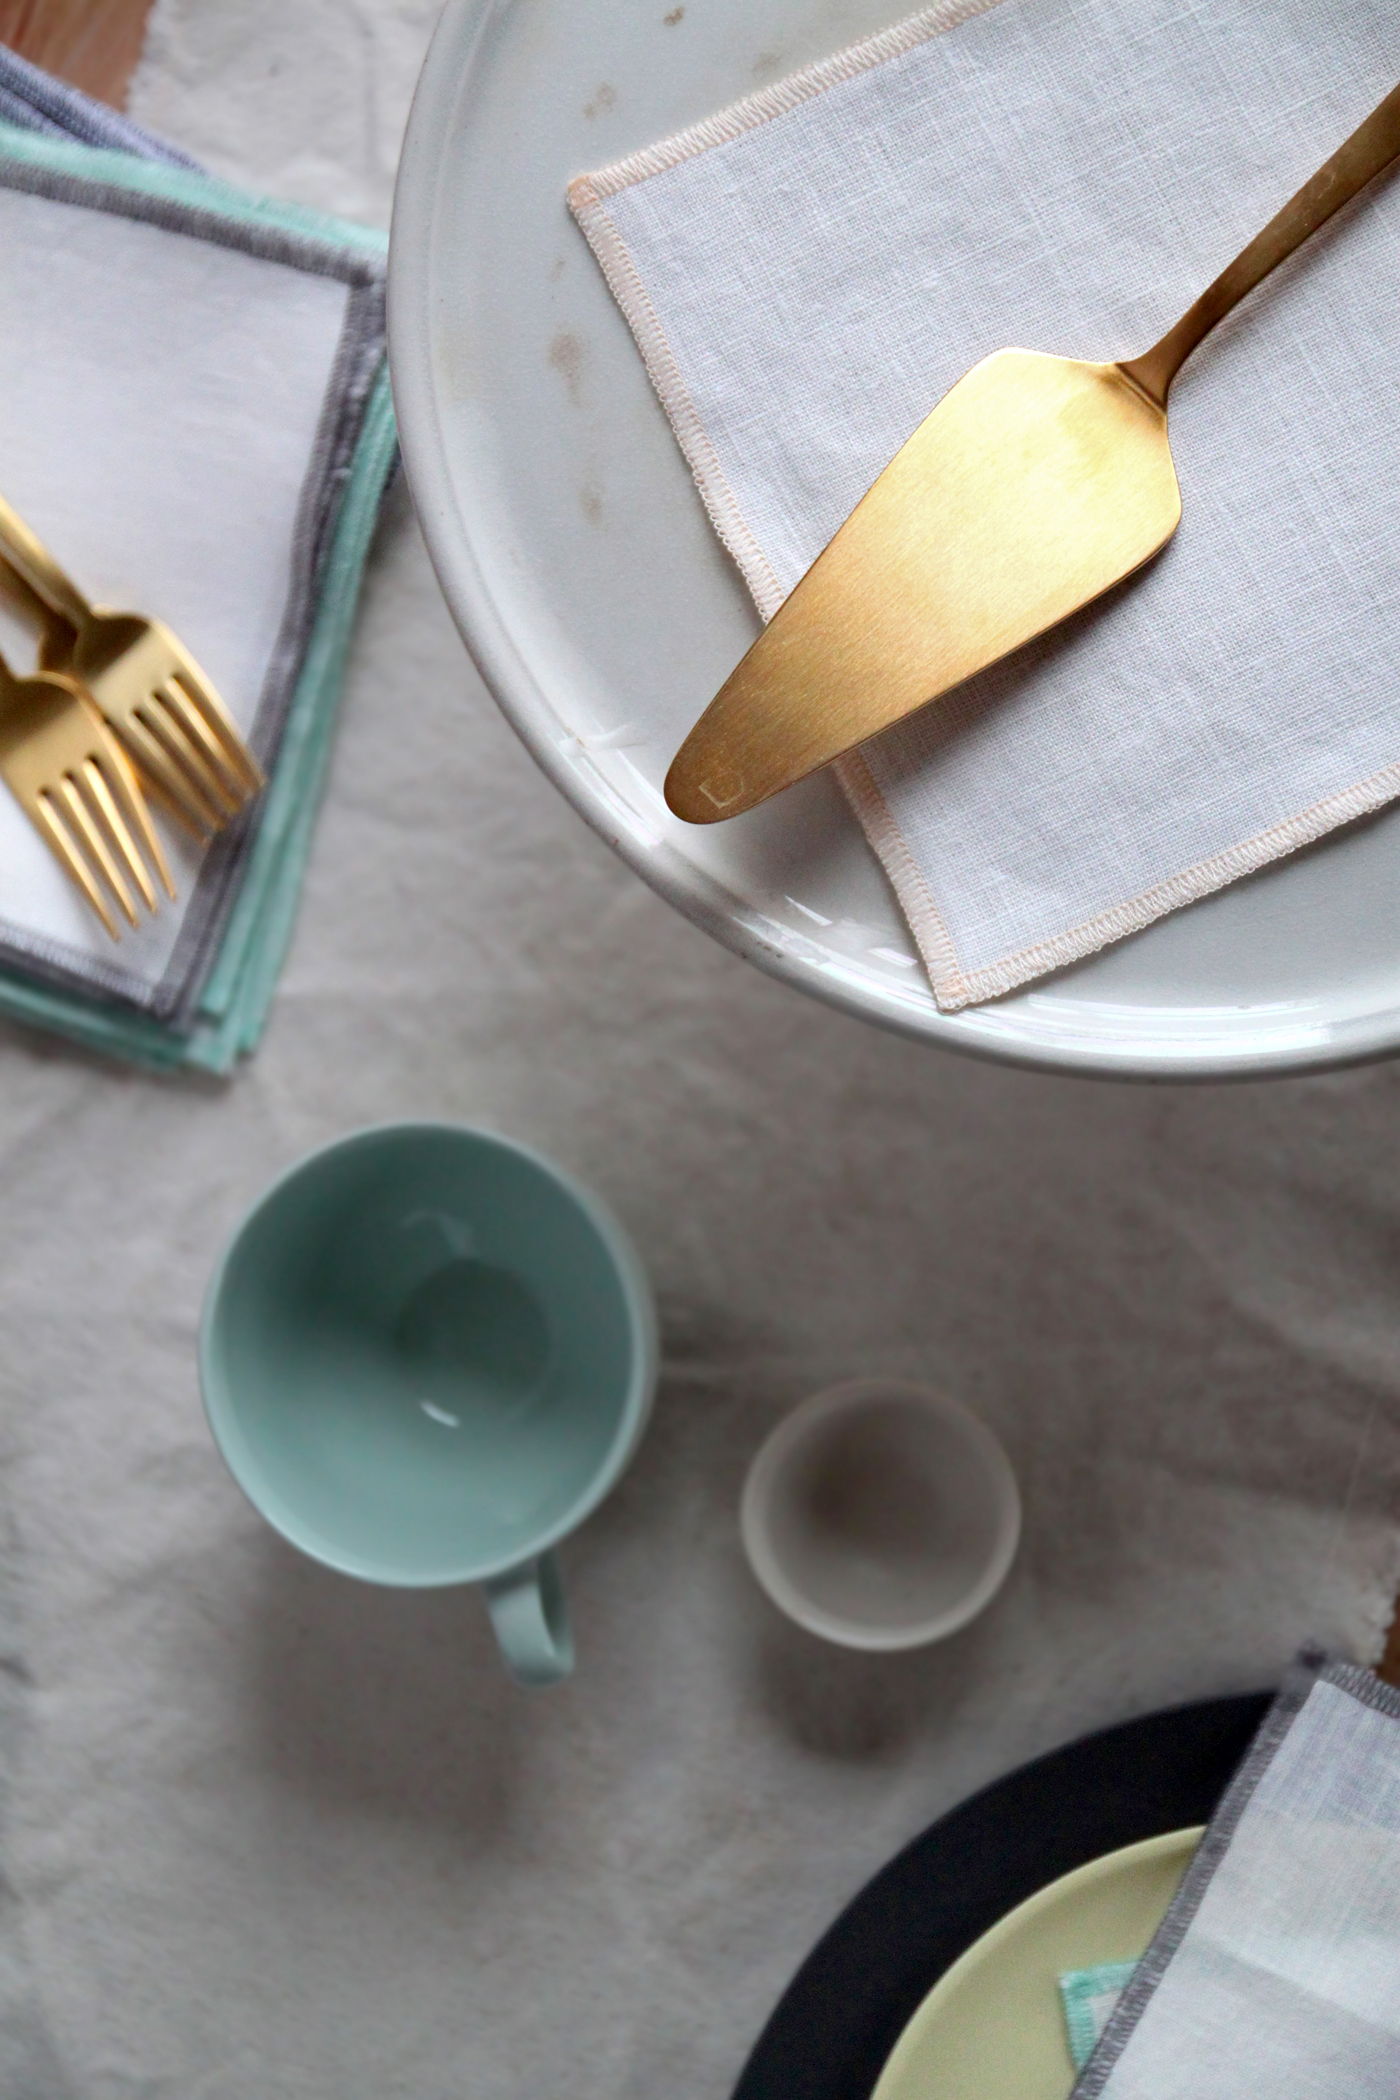 Mothers Day Table with The Everyday Napkin, gold server, by Justine Hand for Remodelista